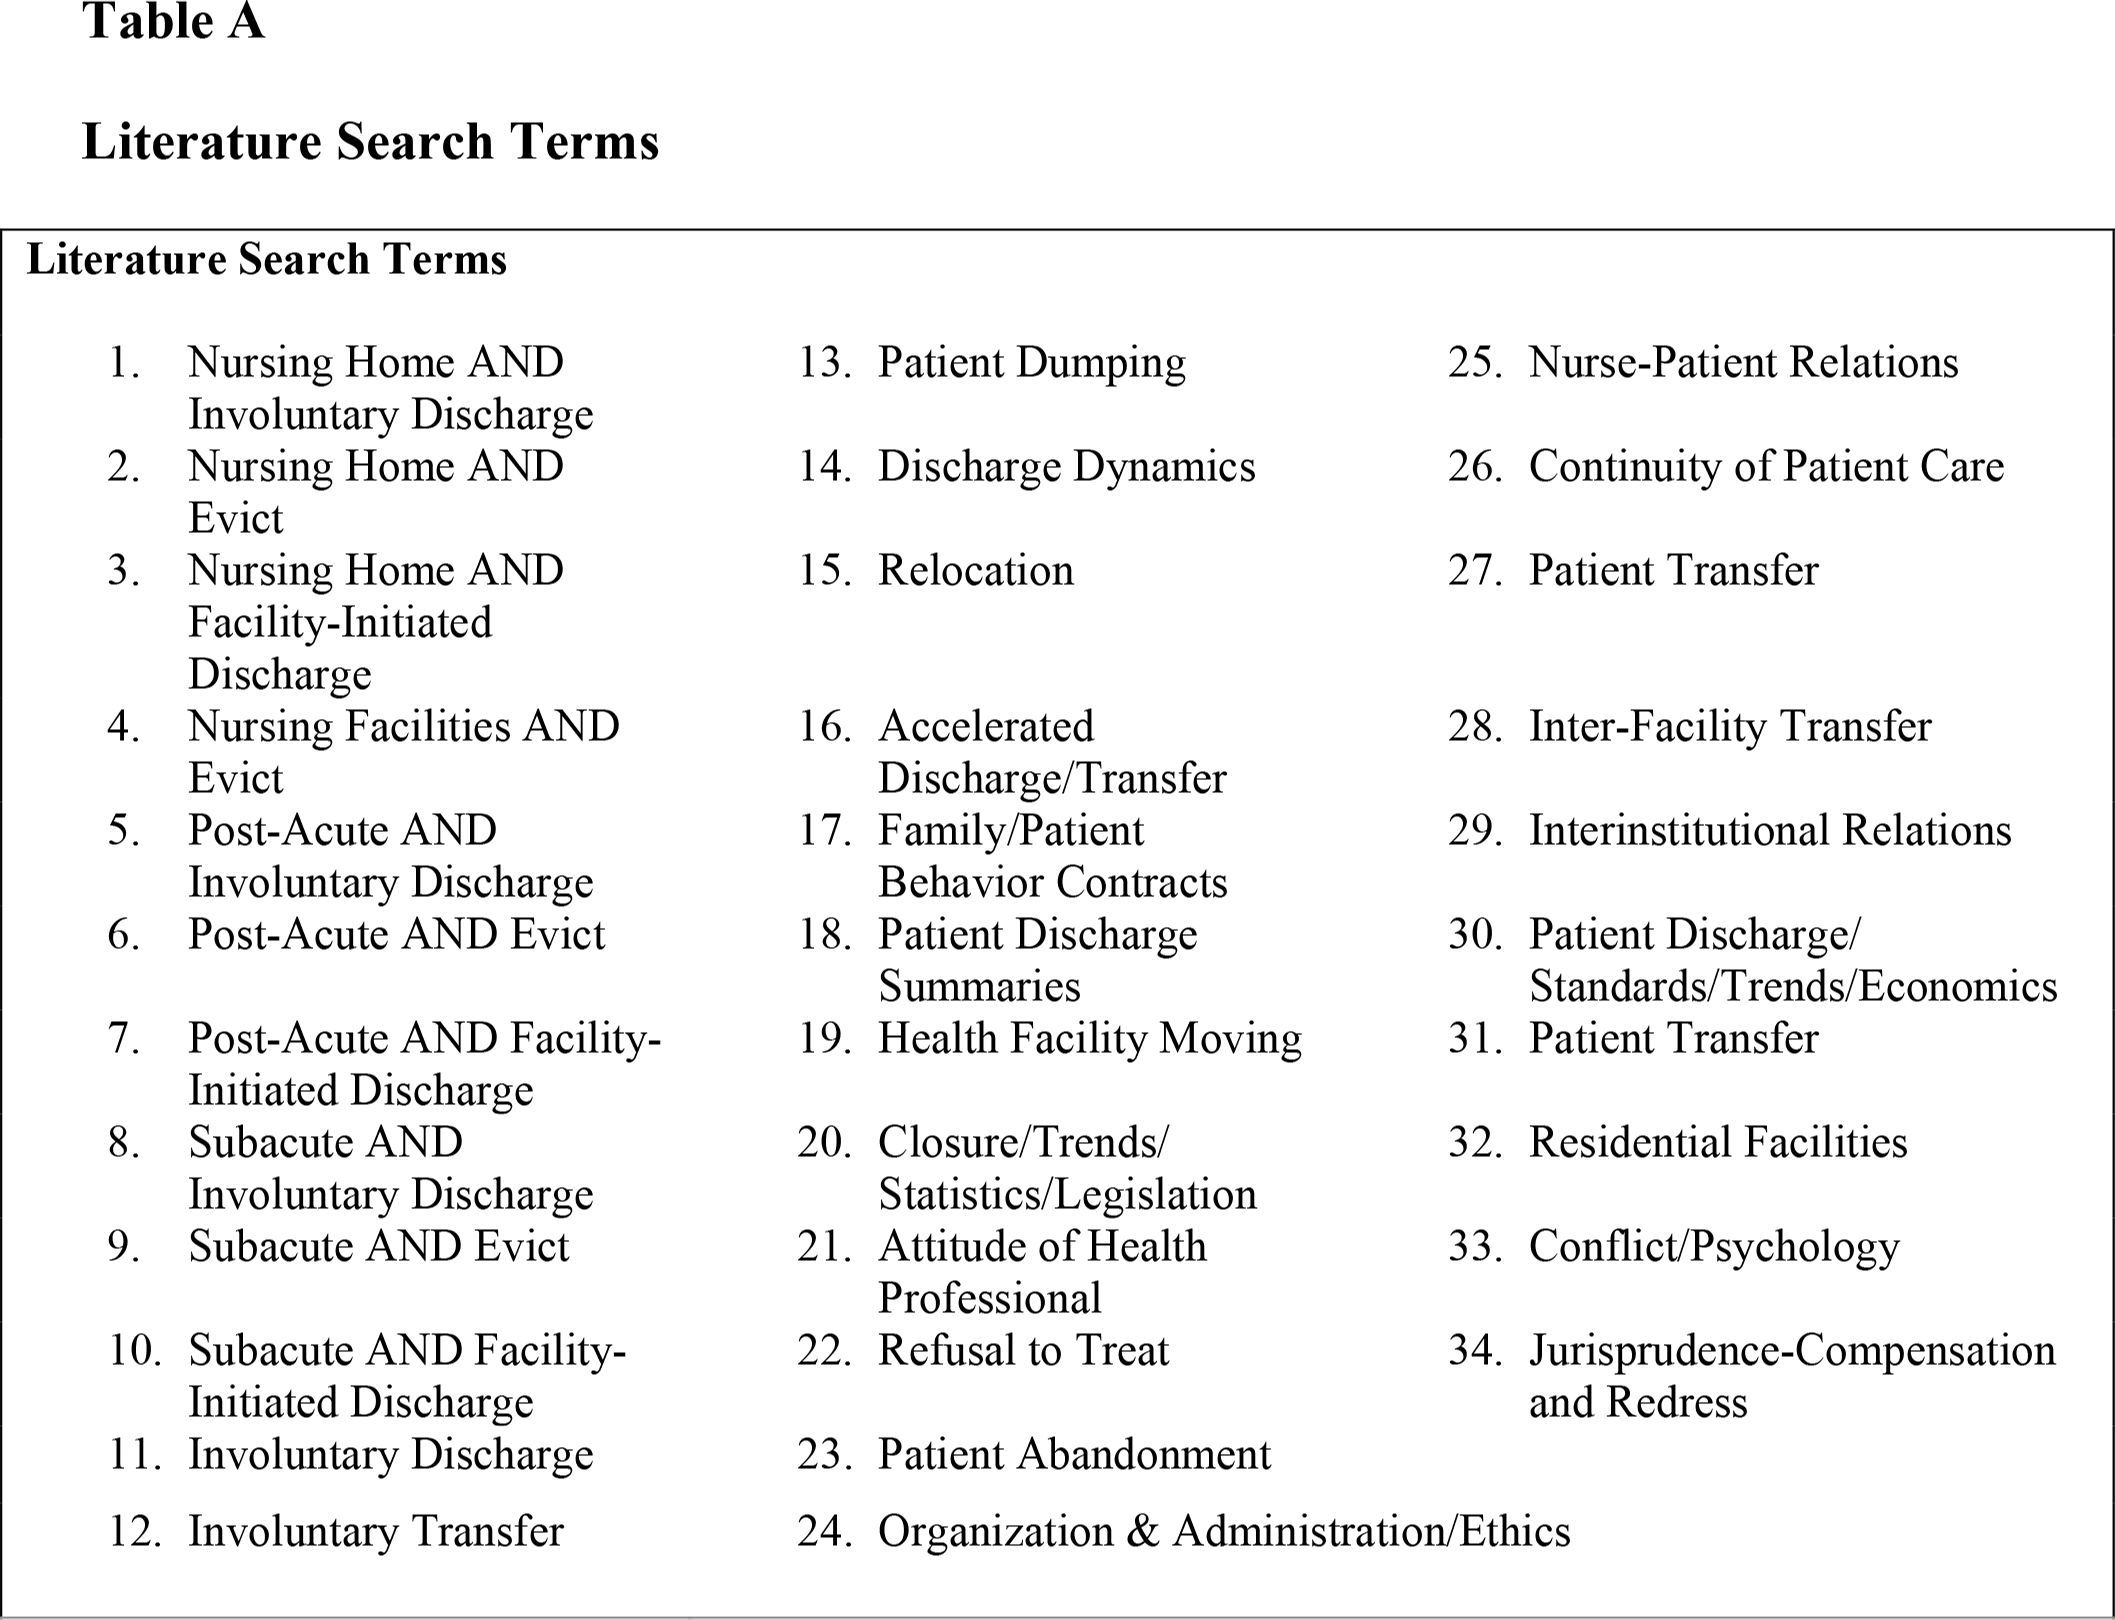 Literature Search Terms